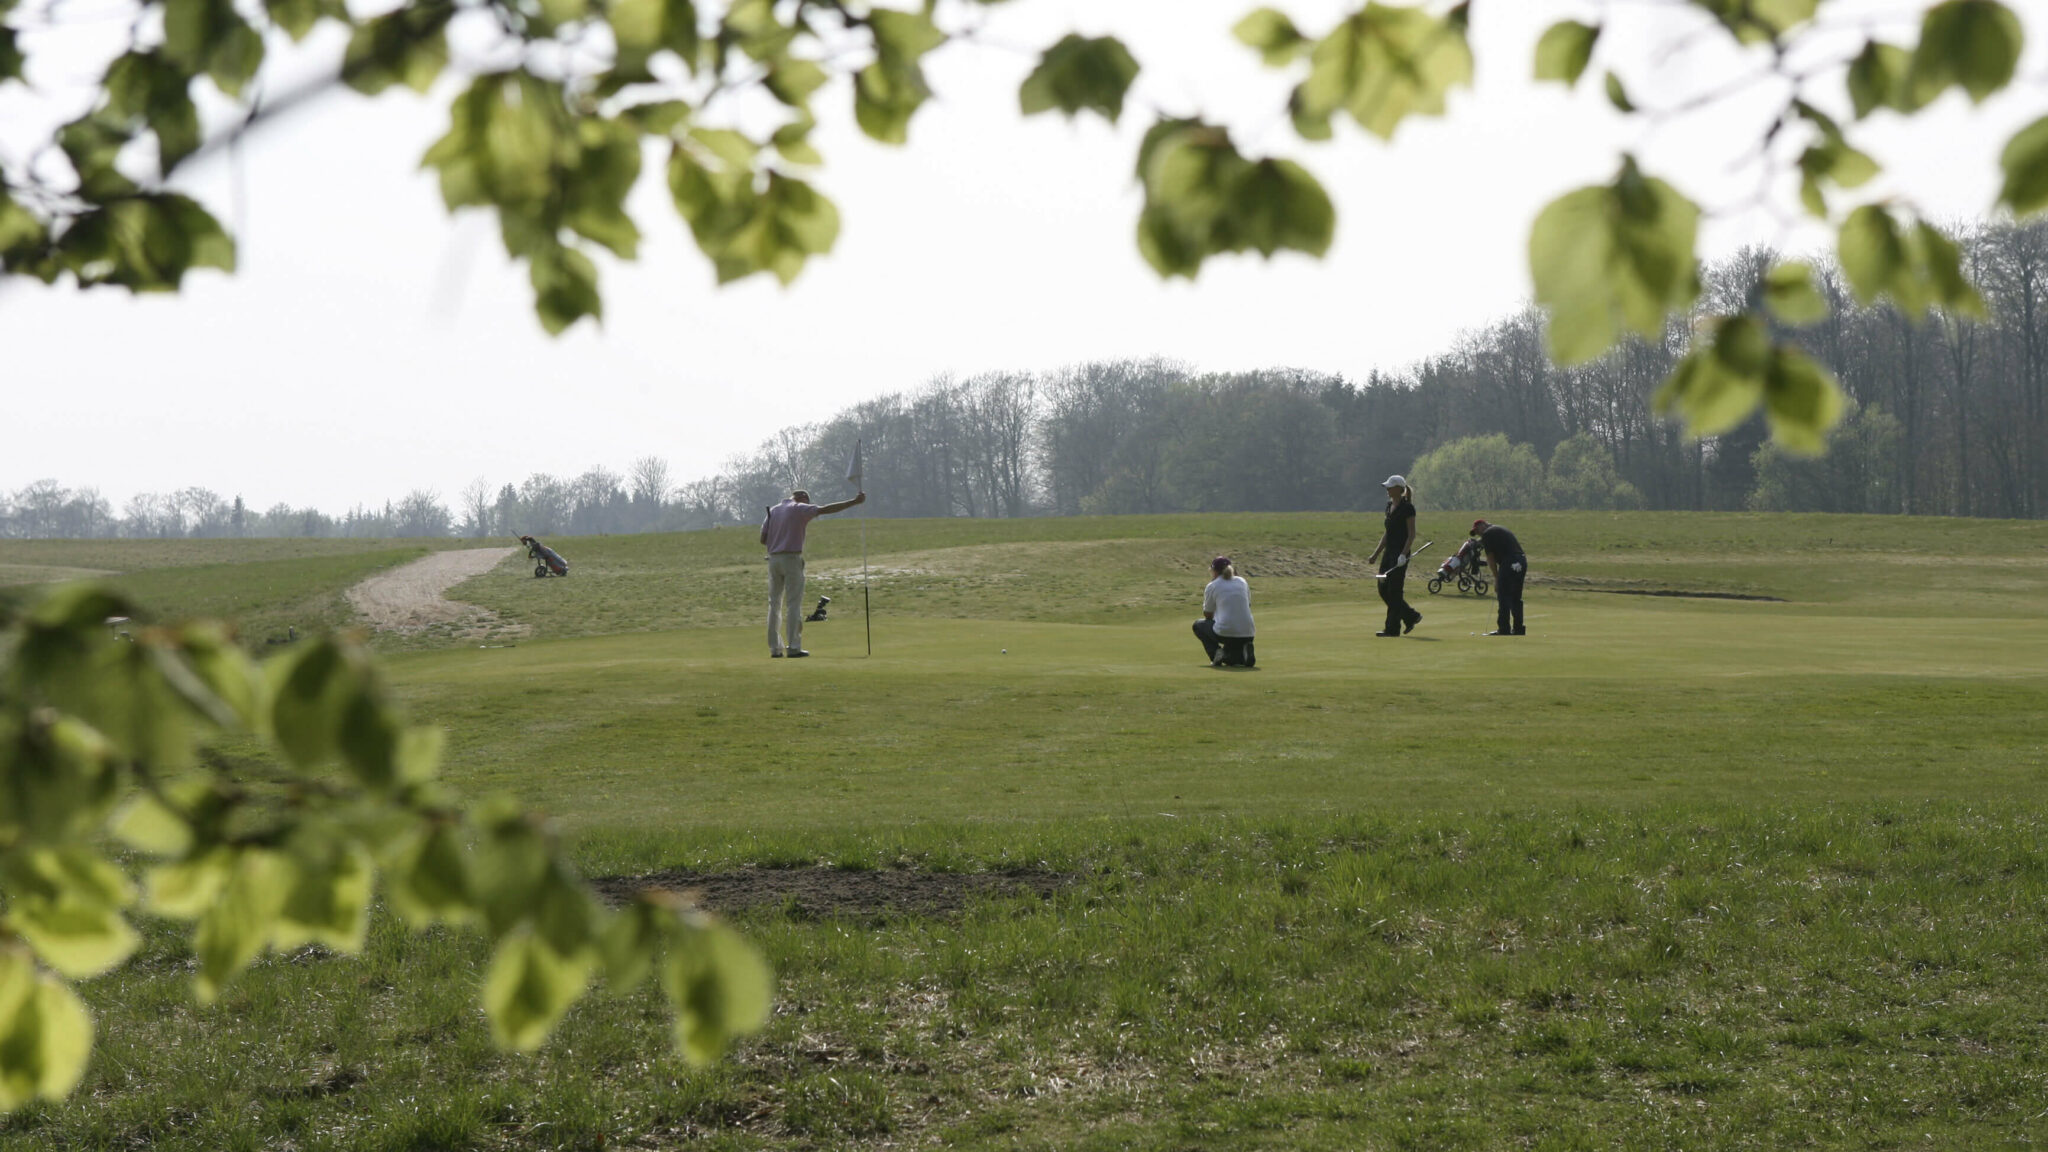 Ledreborg Golf